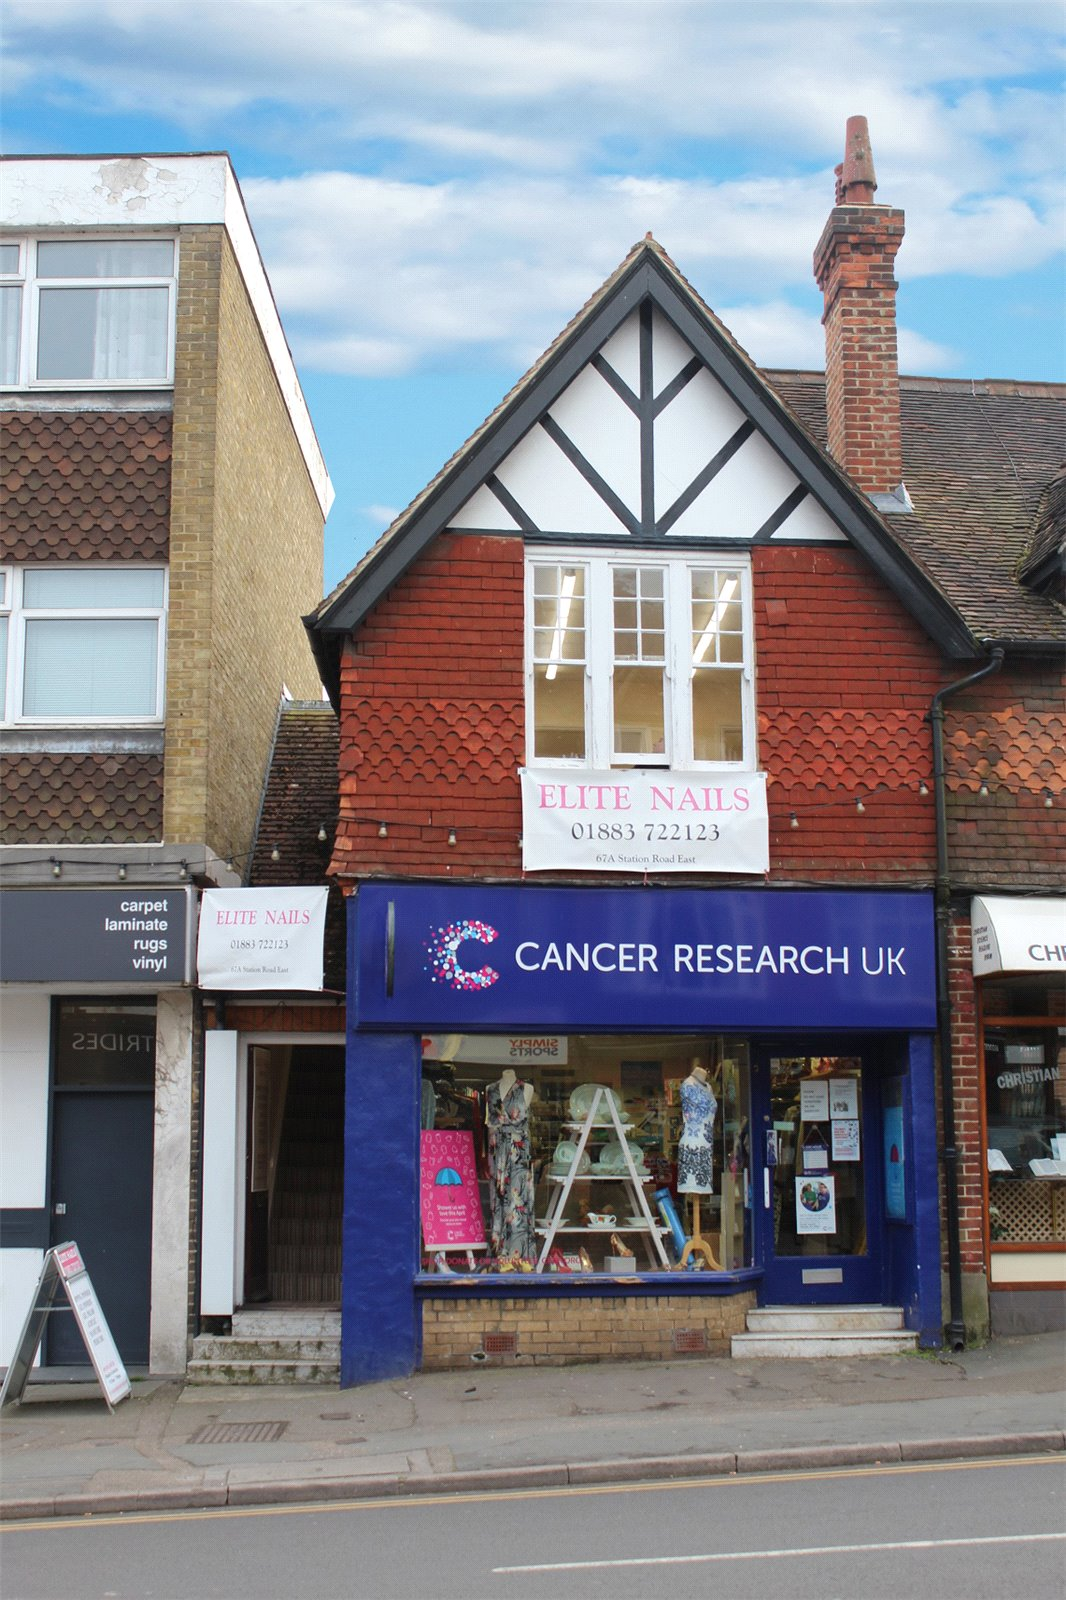 Station Road East, Oxted - £9,000